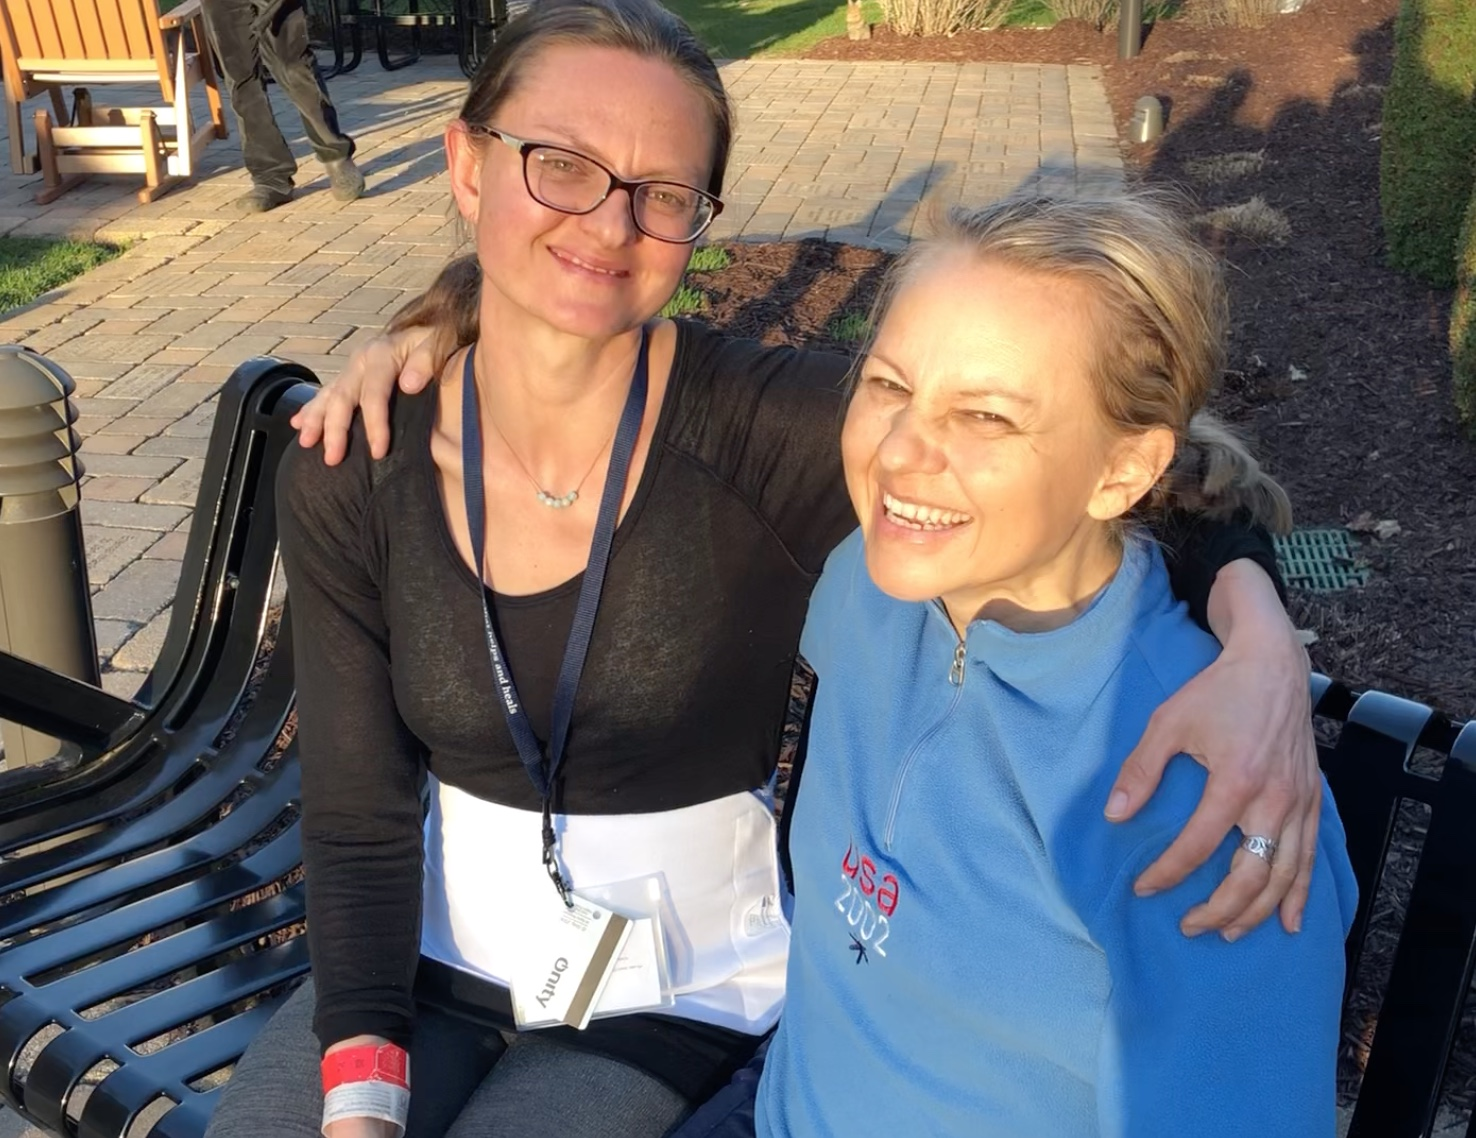 Bree (left) and I, five days after transplant, staying at Gift of Life Transplant House, Rochester, MN.